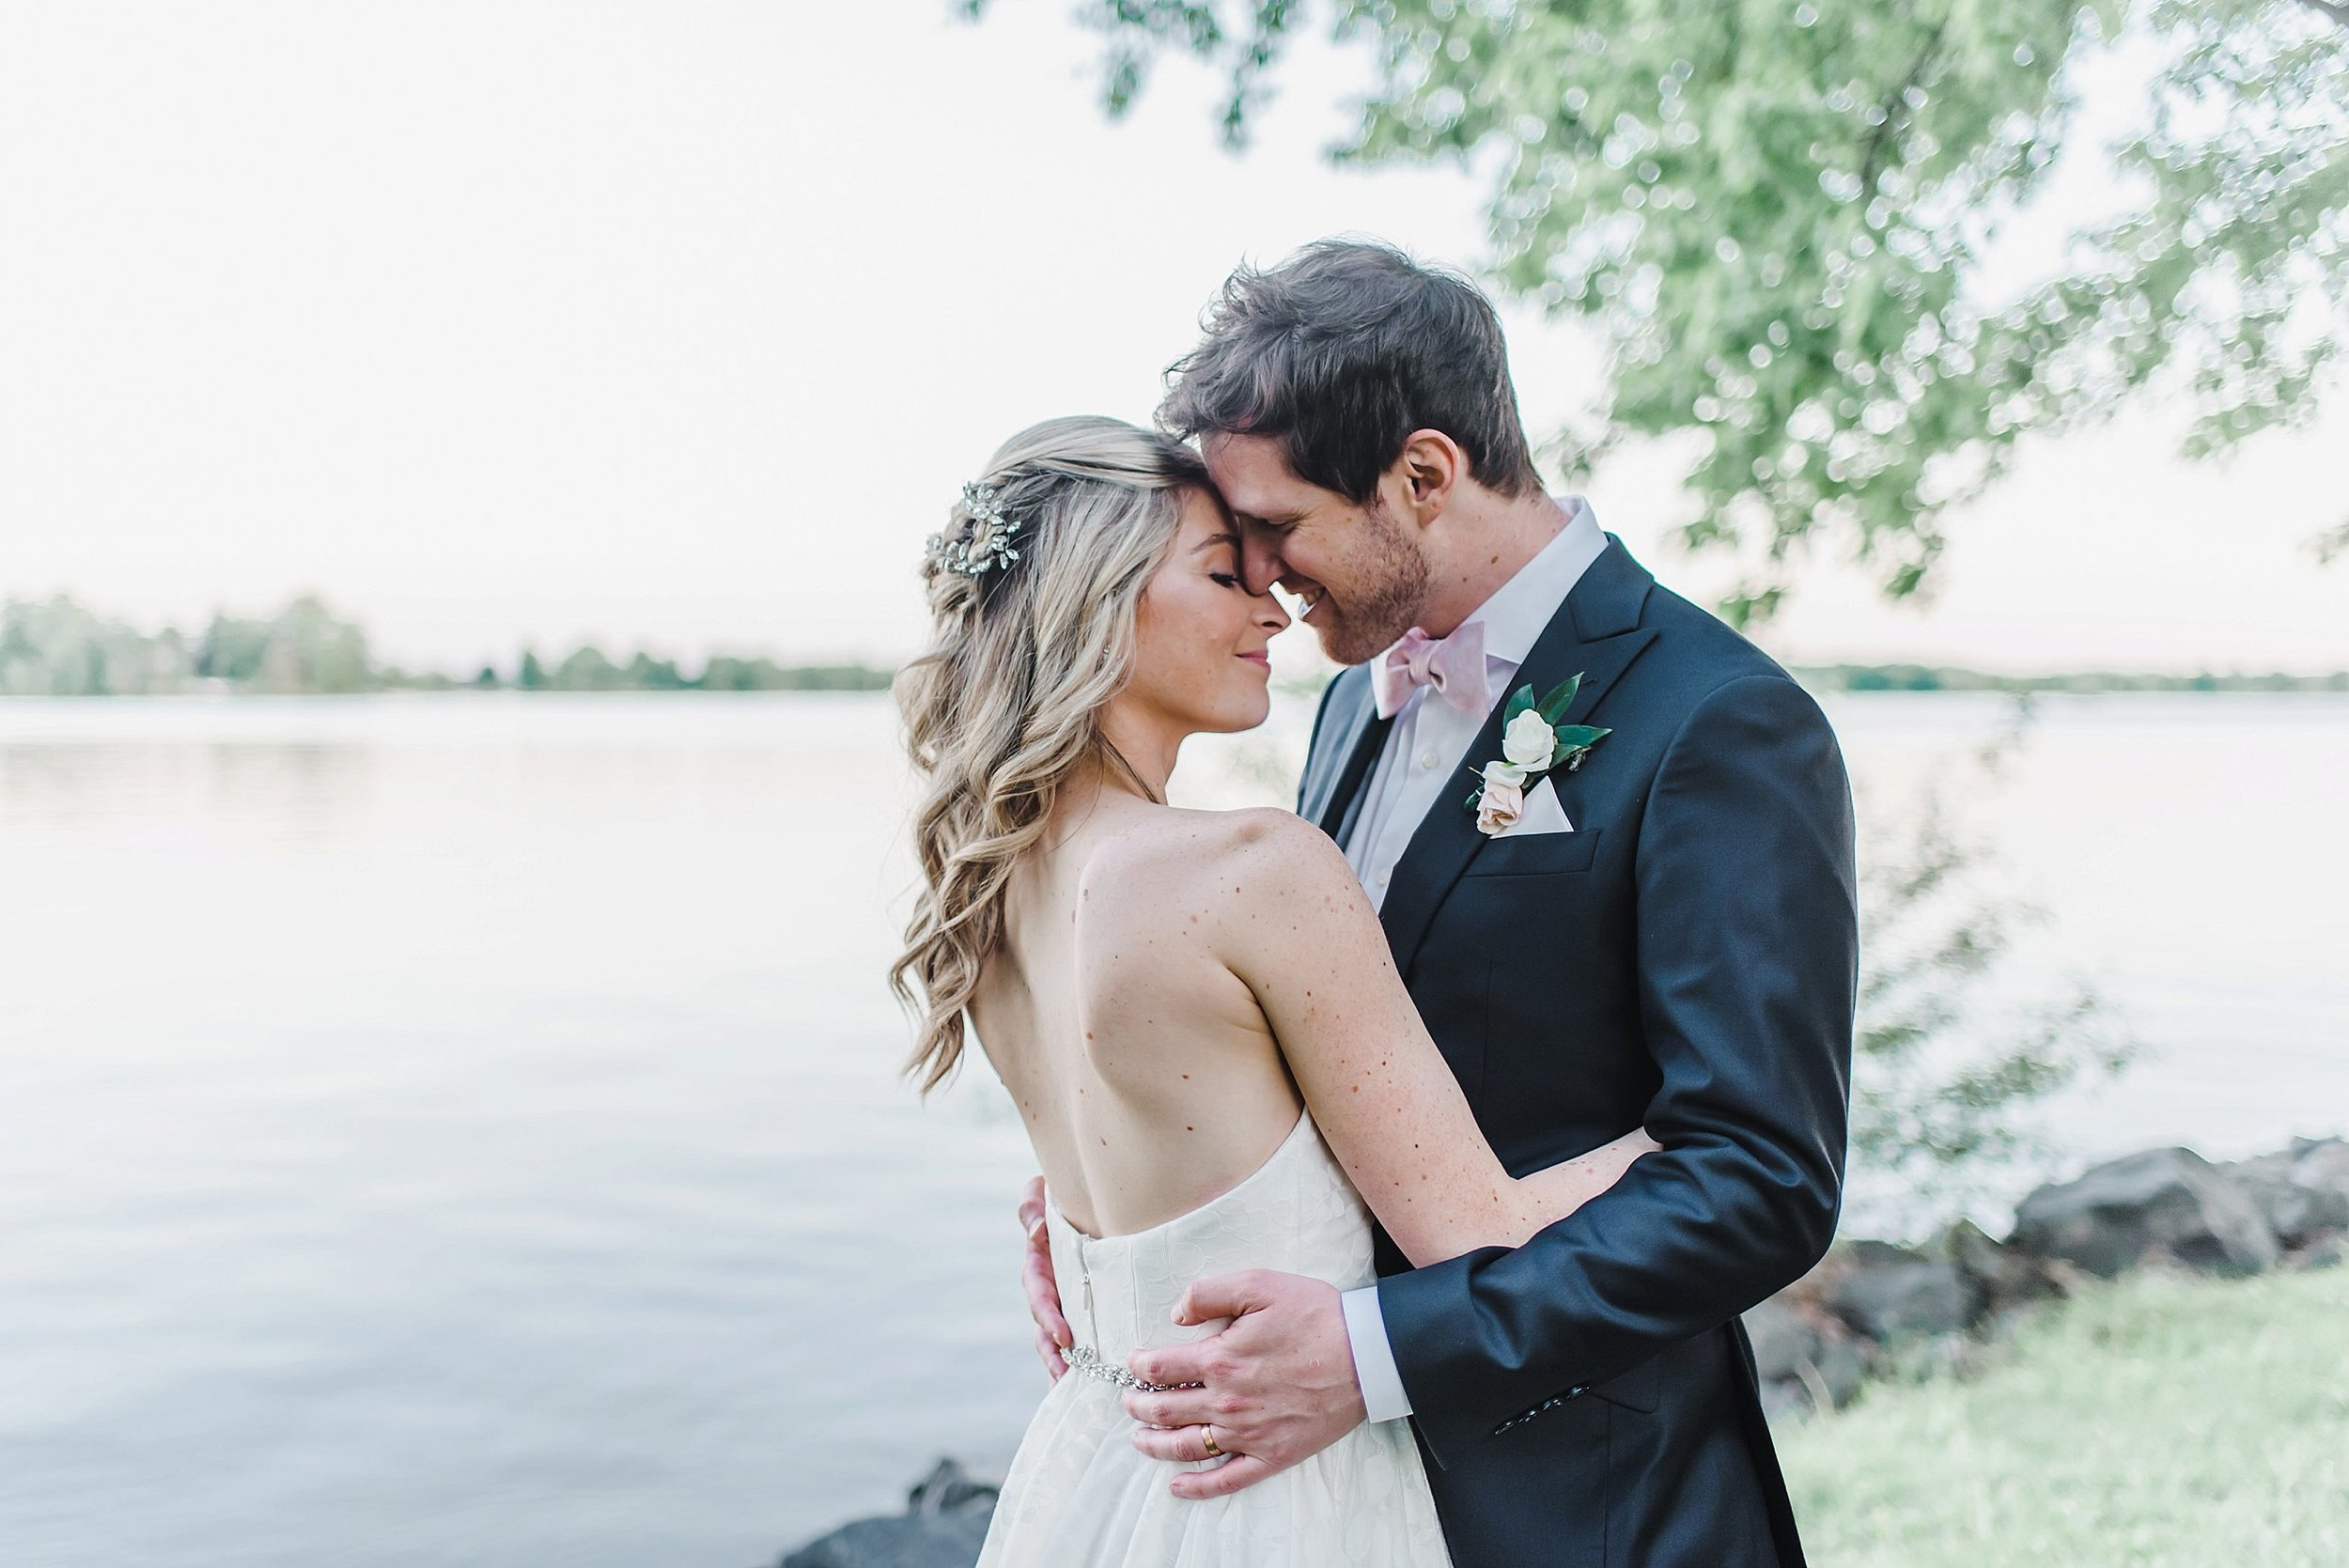 light airy indie fine art ottawa wedding photographer | Ali and Batoul Photography_0128.jpg